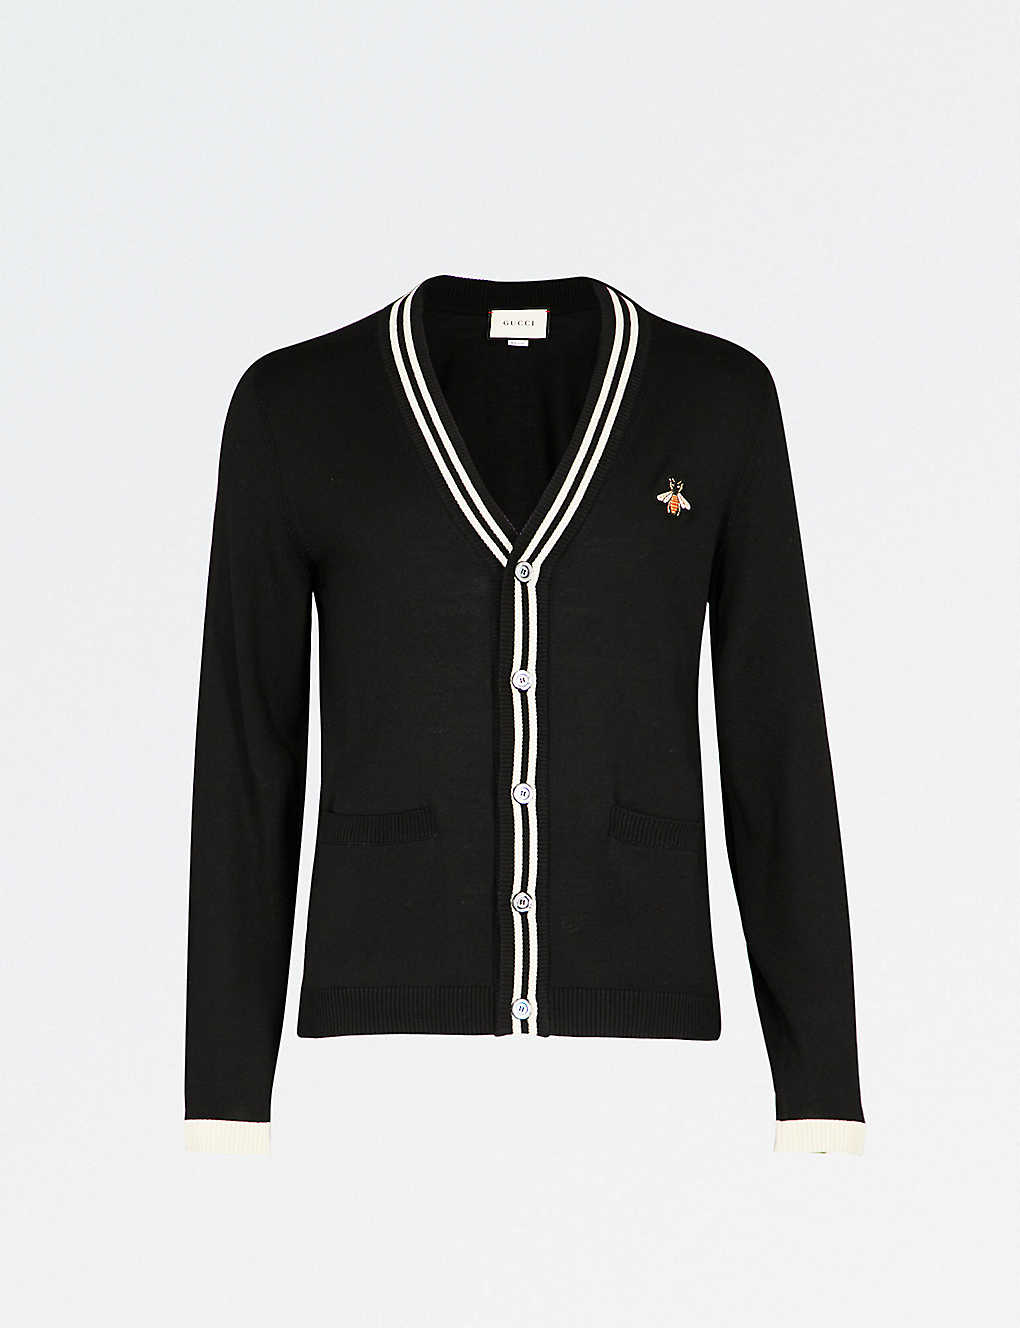 d34dbfd659 GUCCI - Bee-embroidered knitted wool cardigan | Selfridges.com